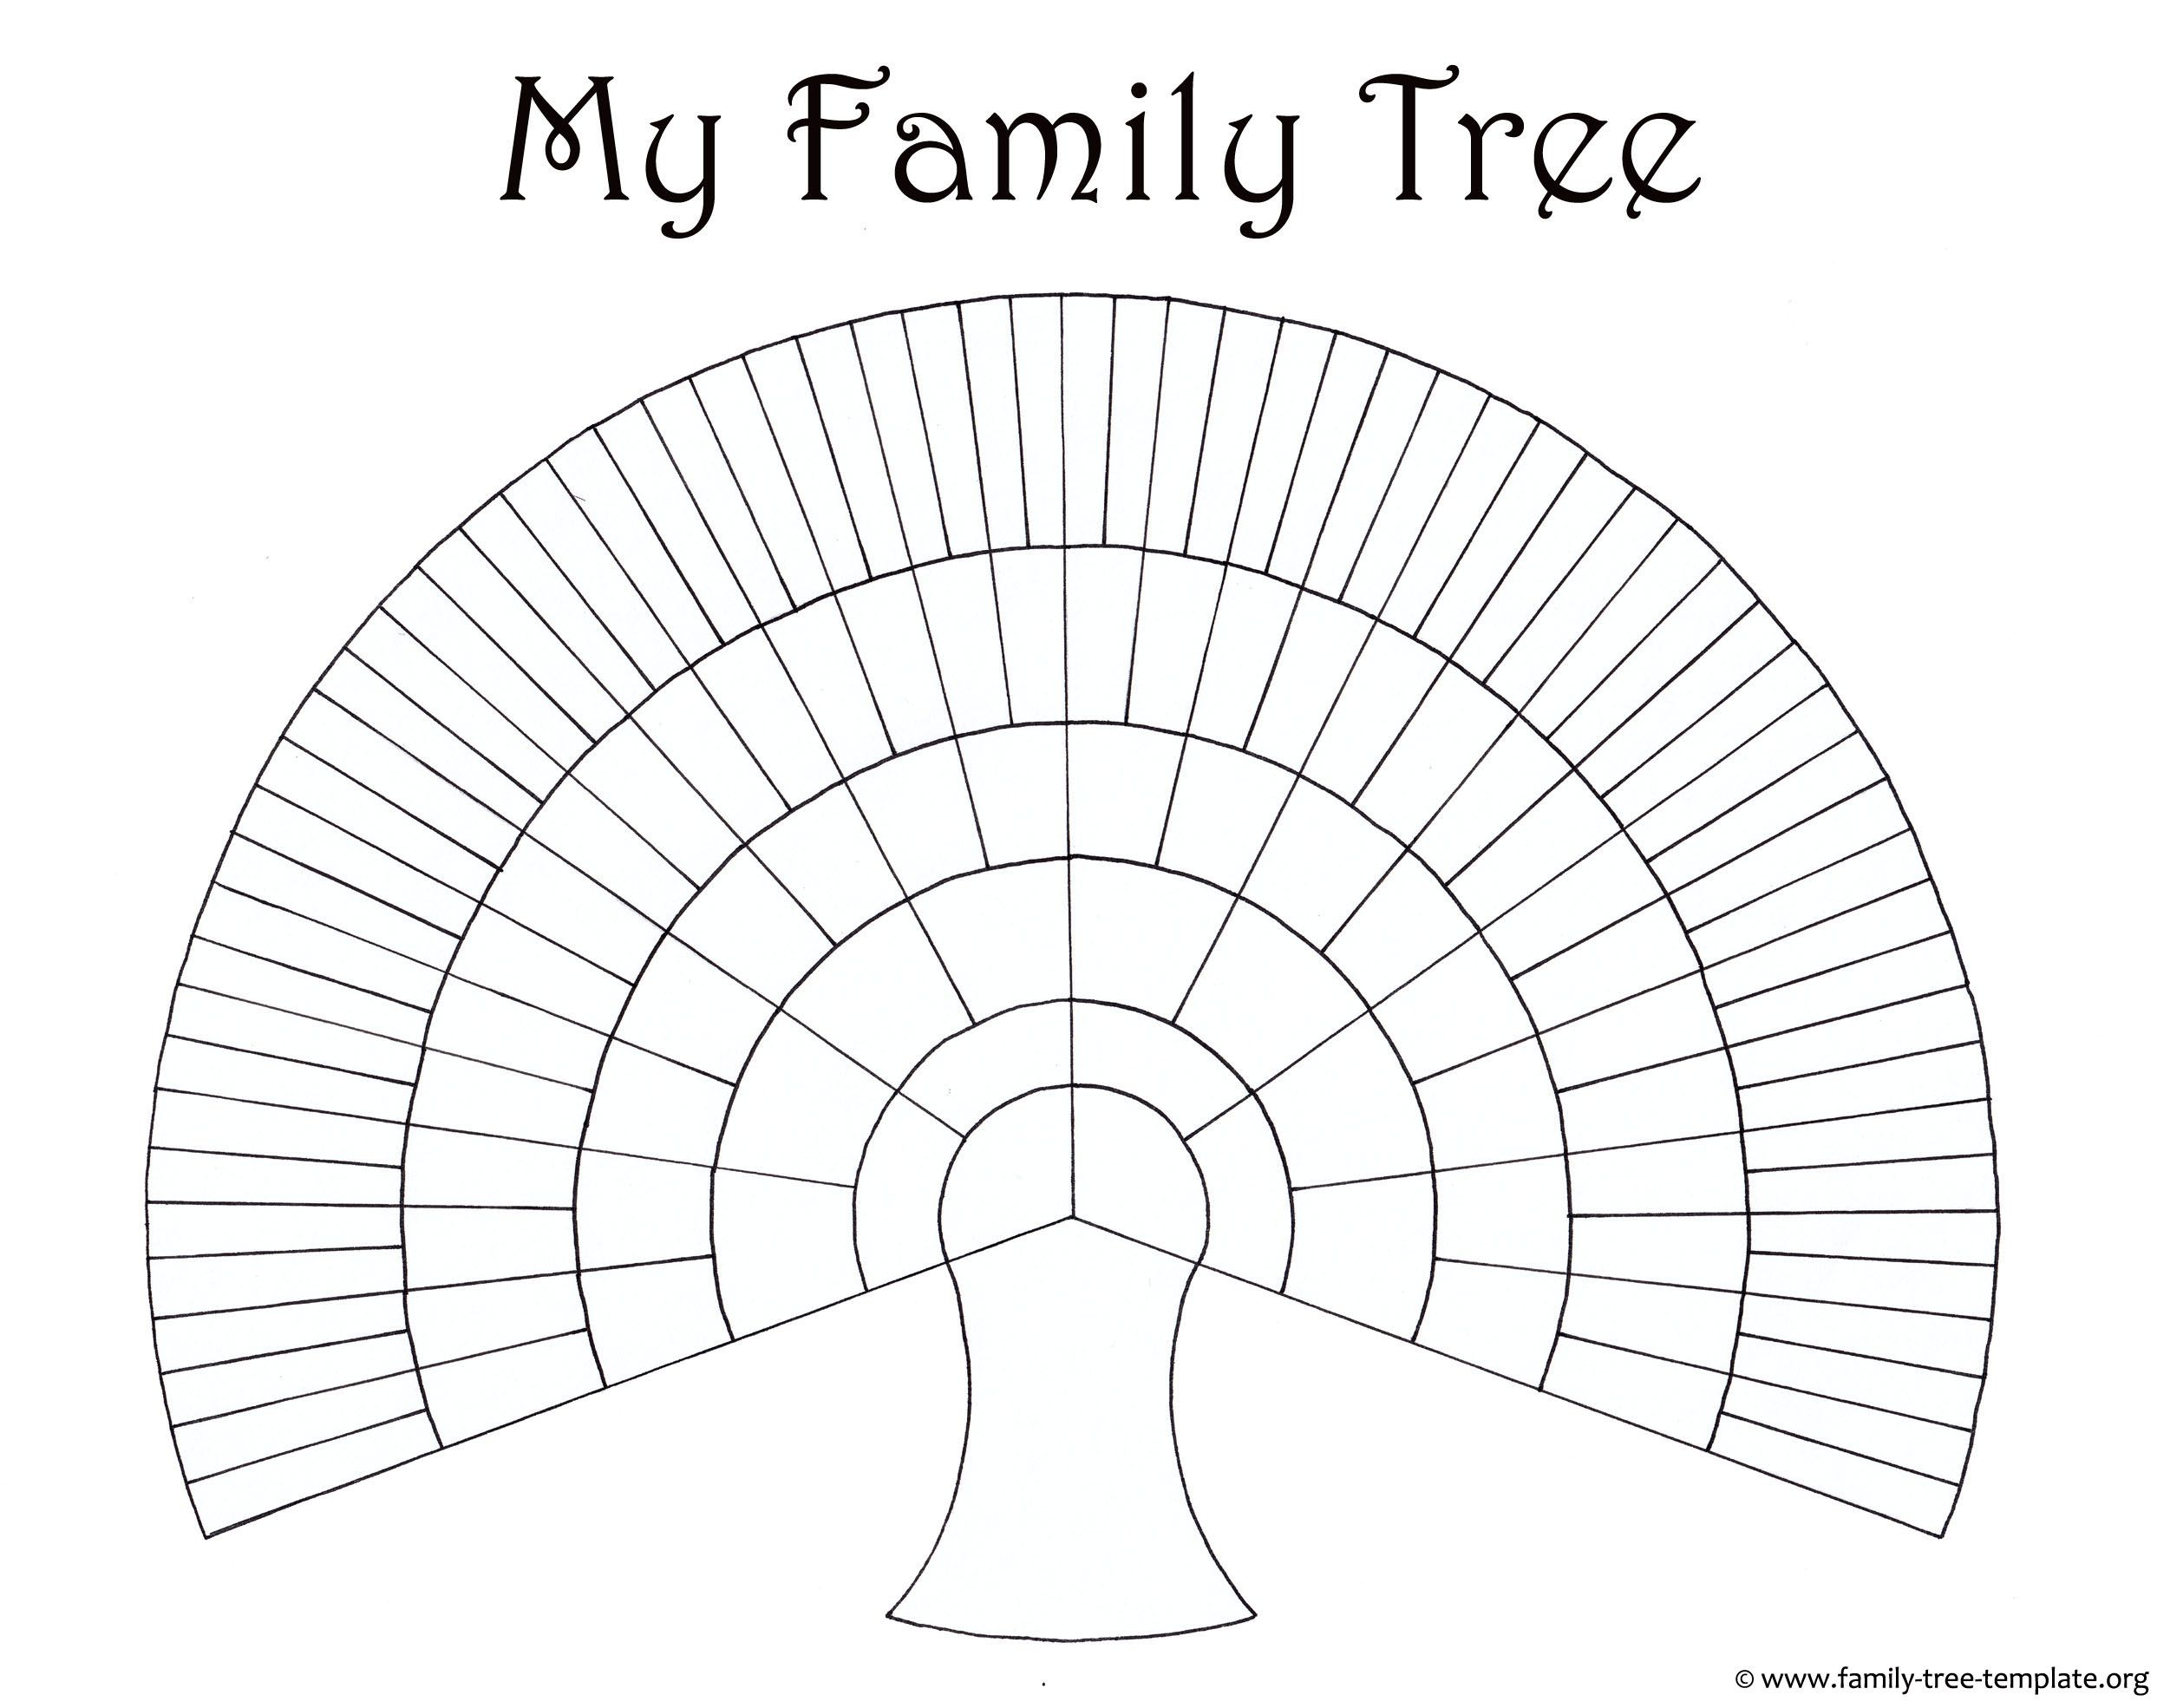 Huge family tree template for kids to print and color